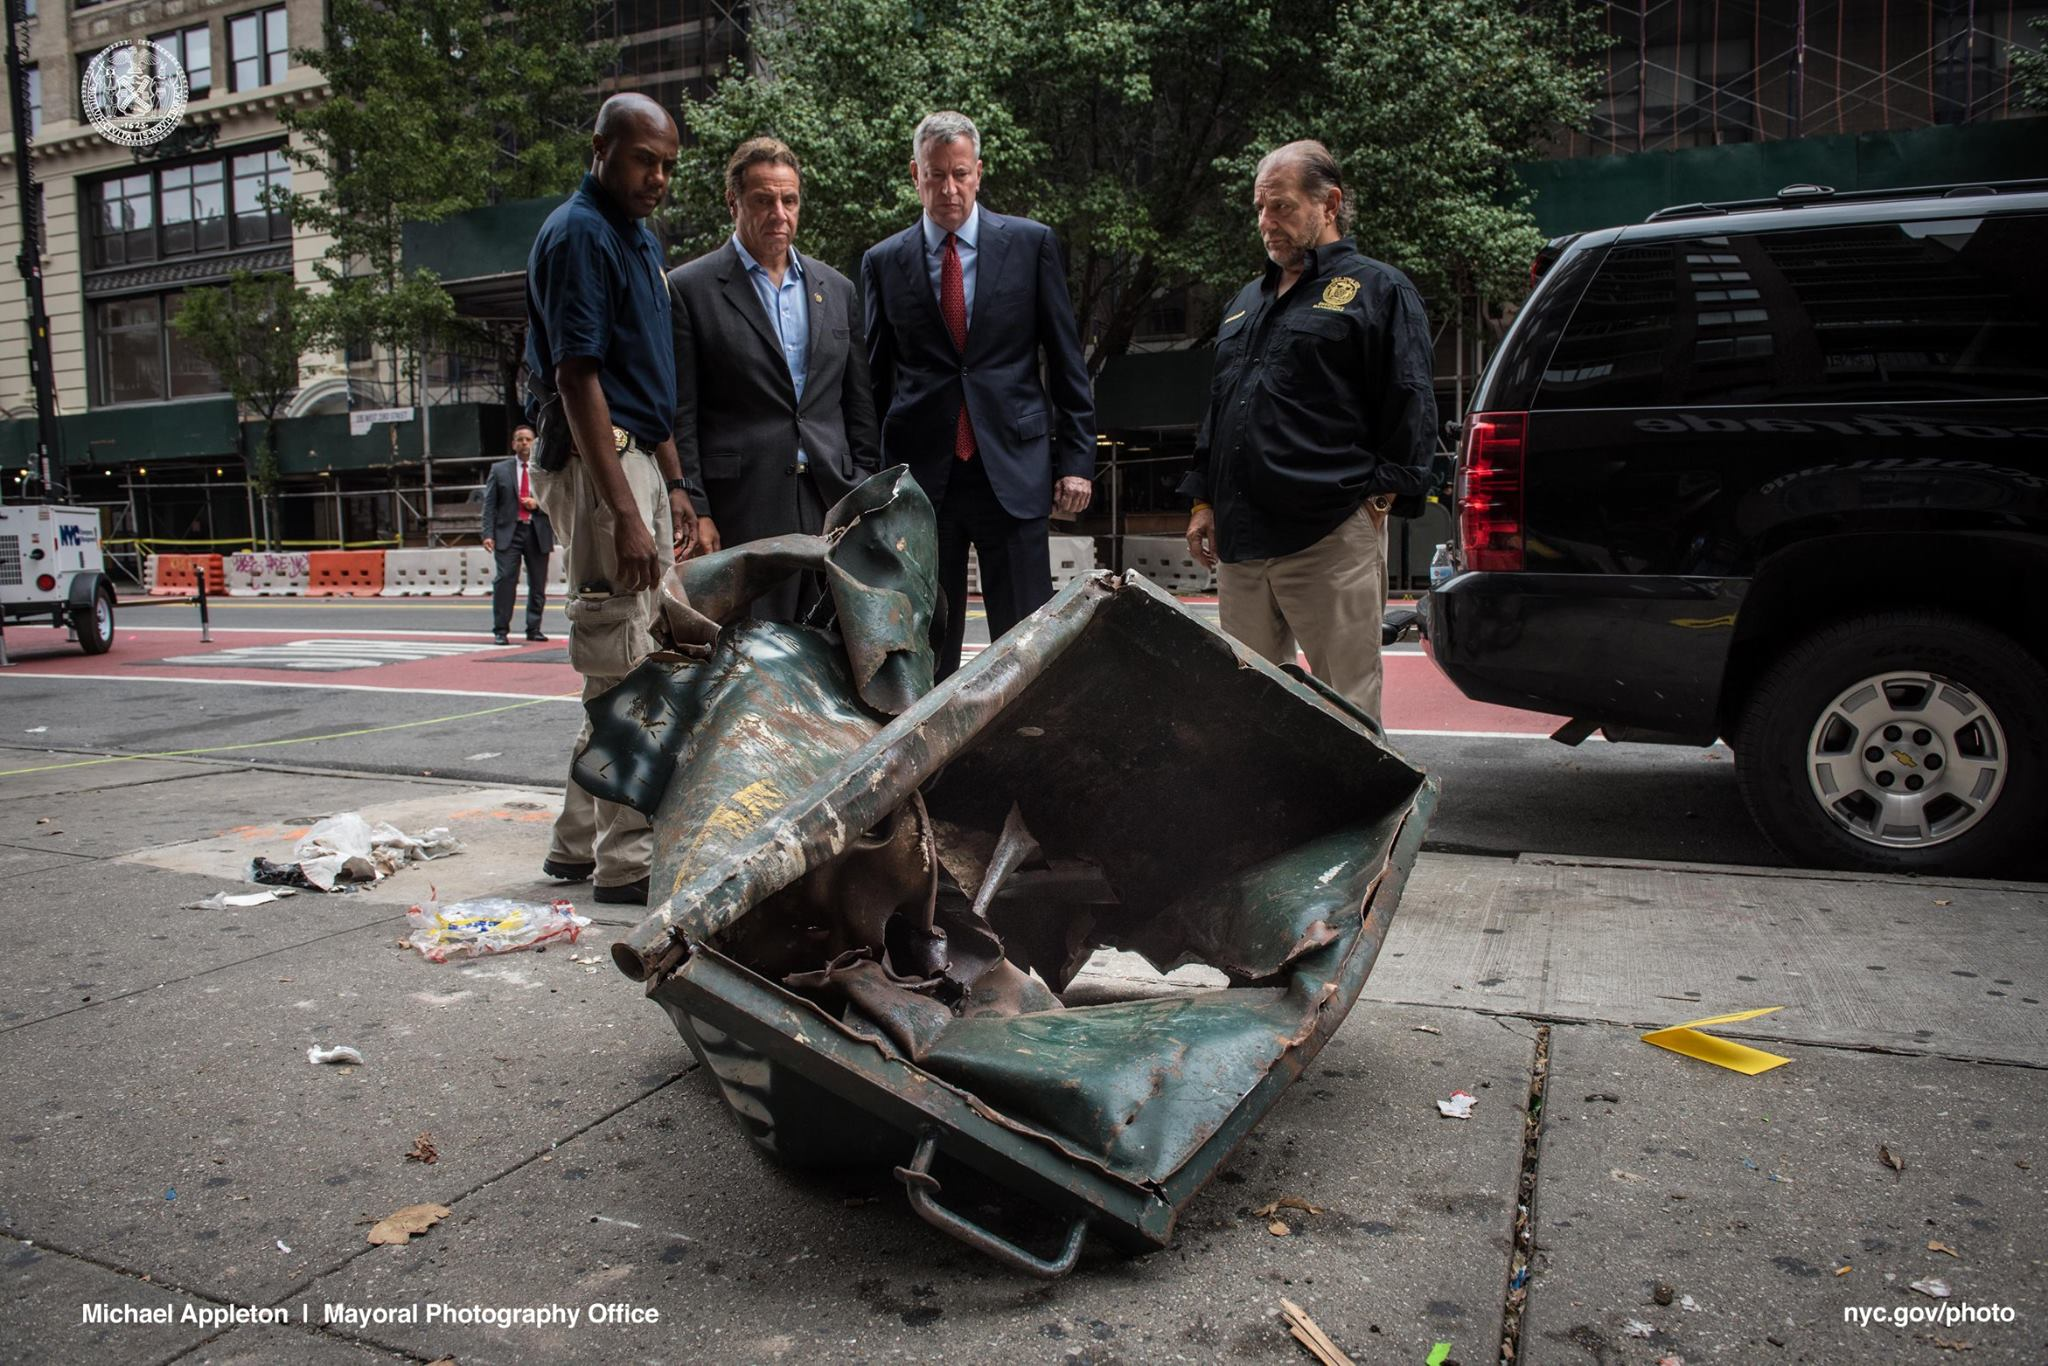 New York governor Andrew Cuomo (second from left) and the city mayor Bill de Blasio (third from left) walk through the site of incident in Chelsea (Photo: Bill de Blasio/Facebook)